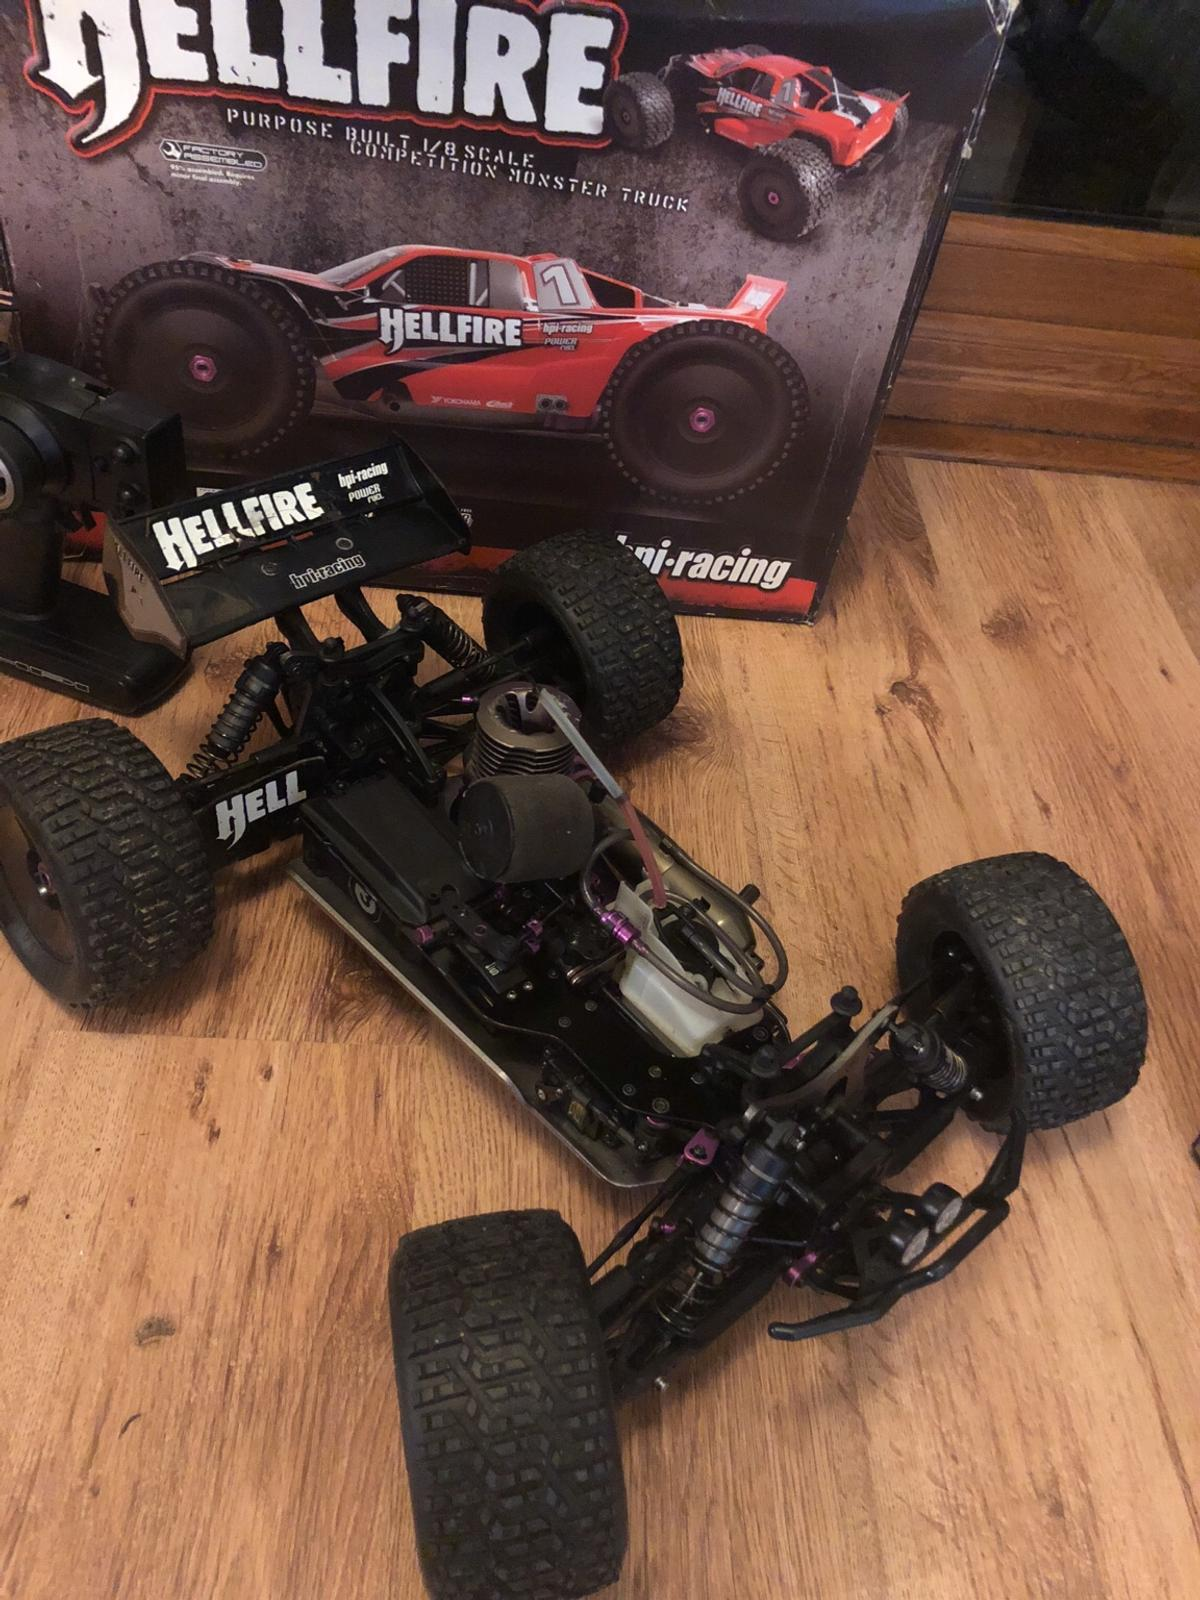 Hpi Hellfire nitro rc 4wd truck/car in Cefn for £110 00 for sale